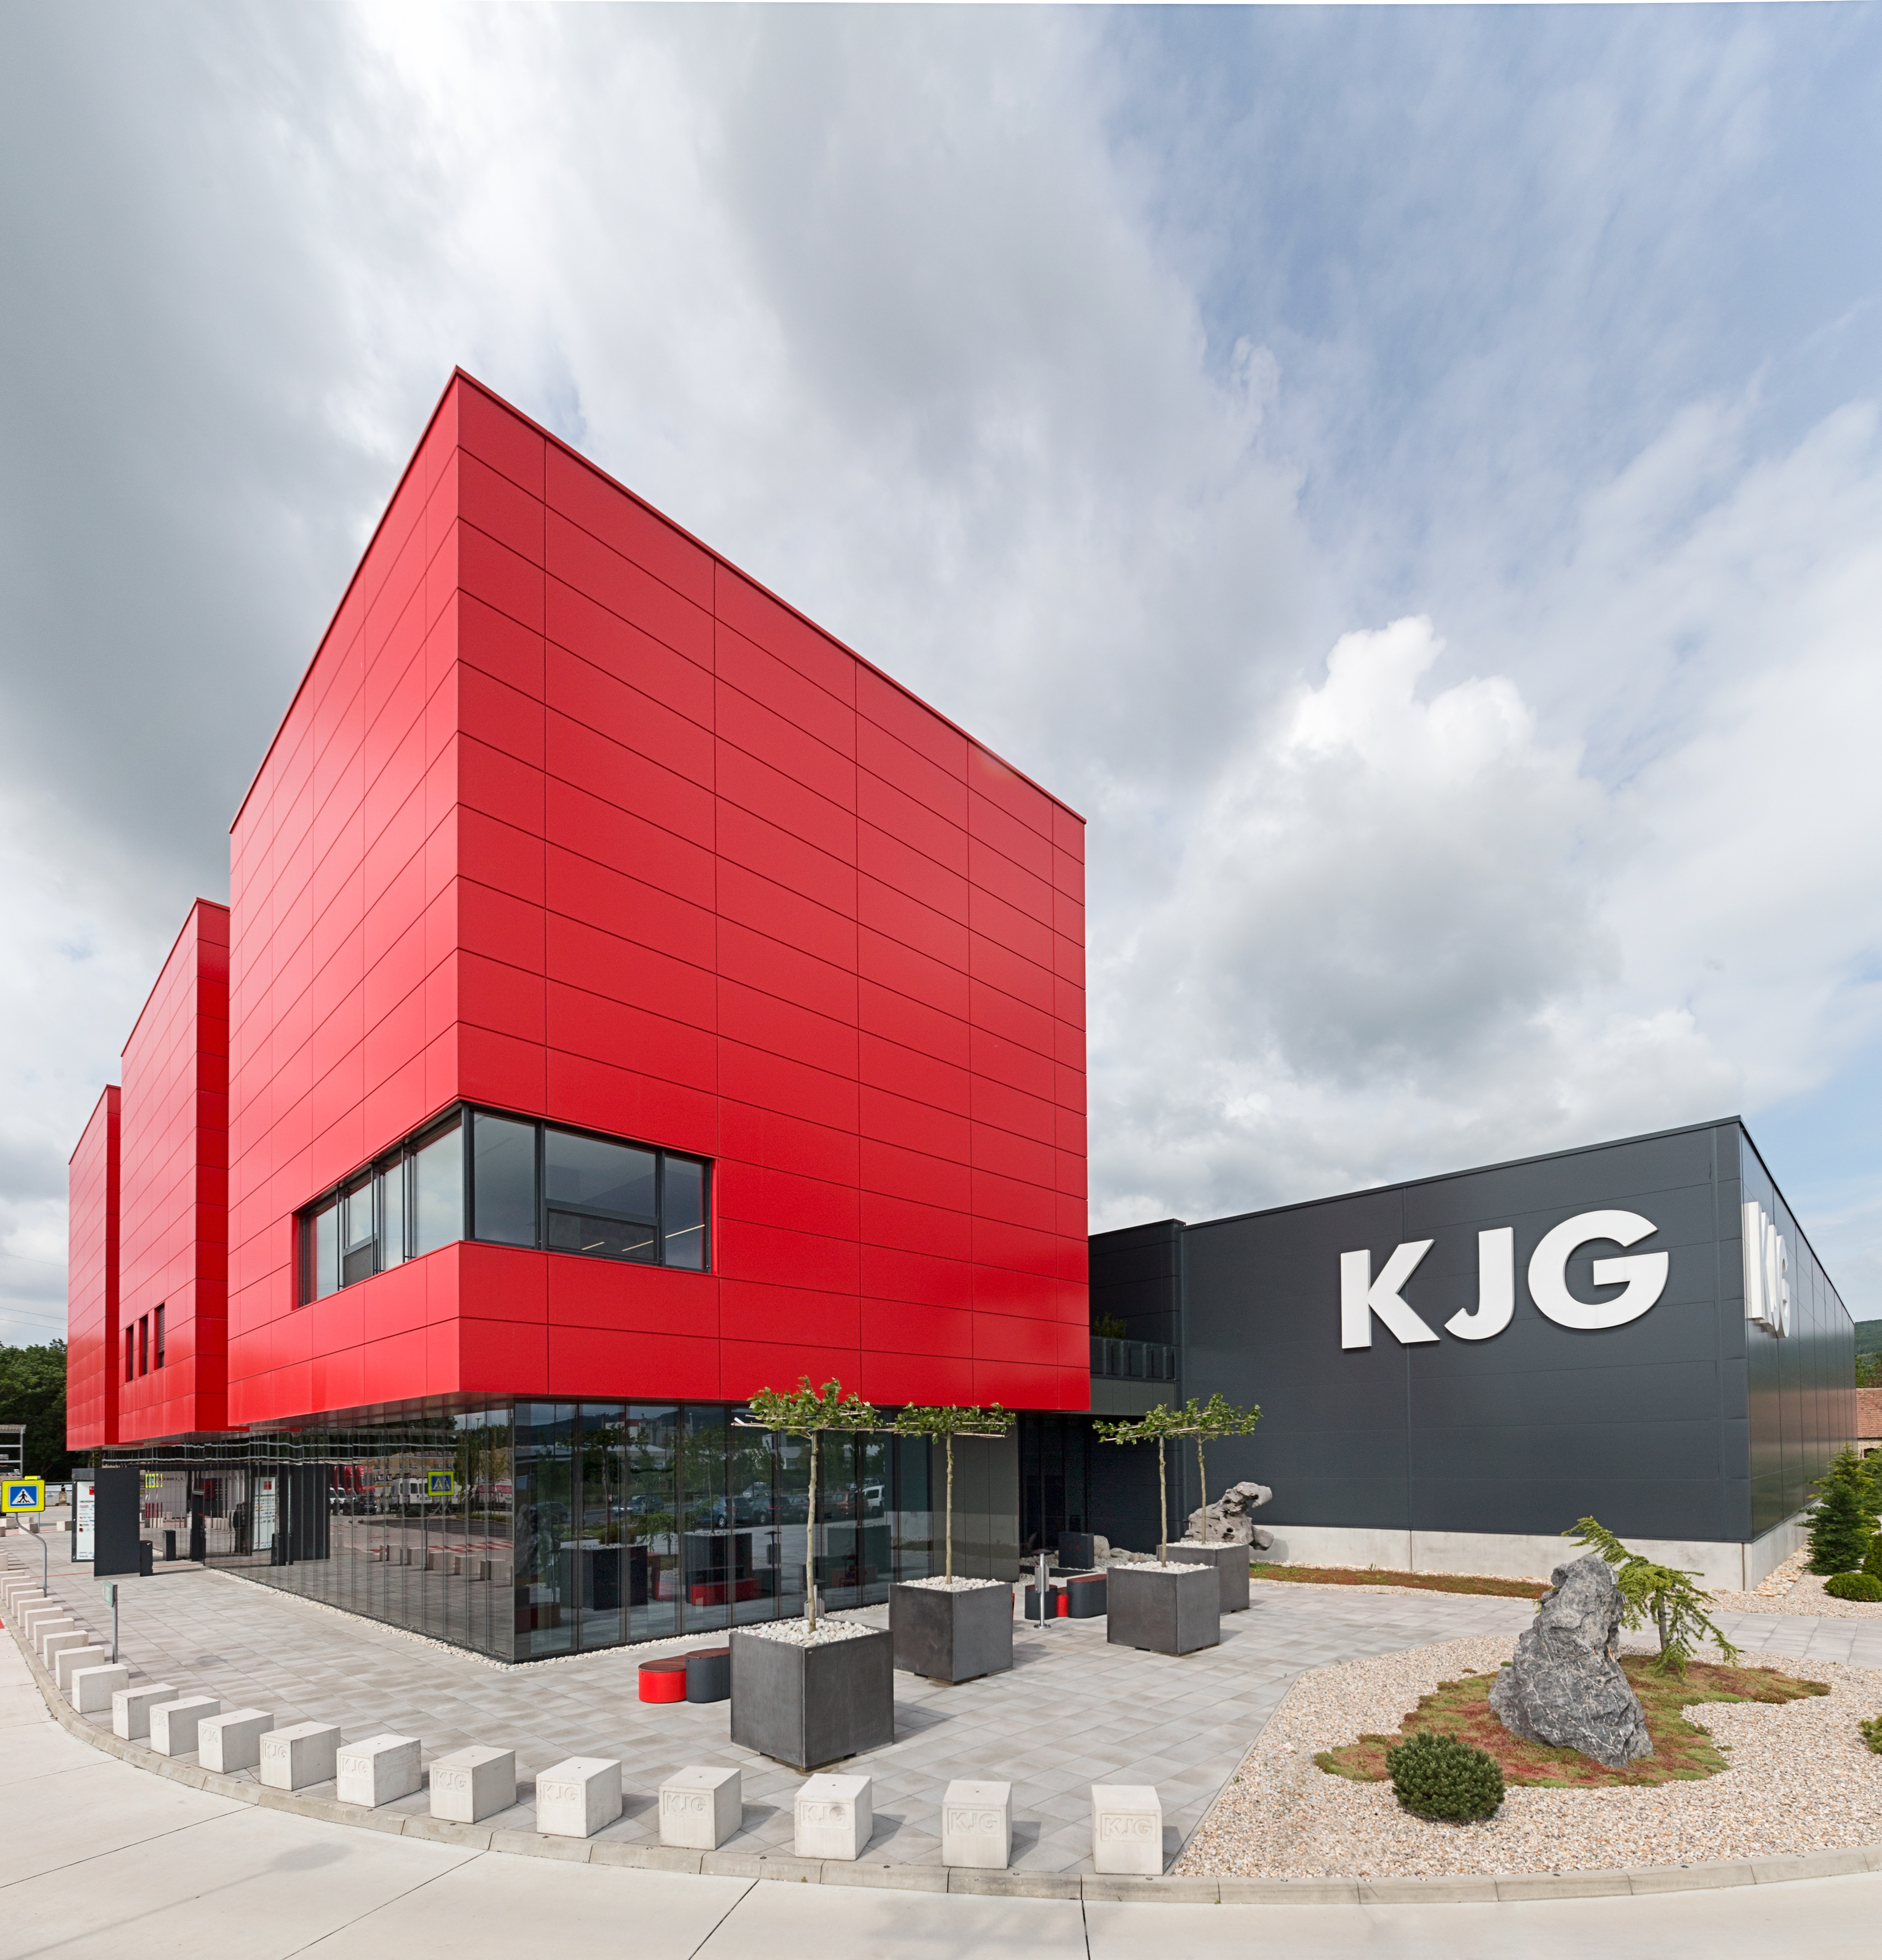 KJG business center